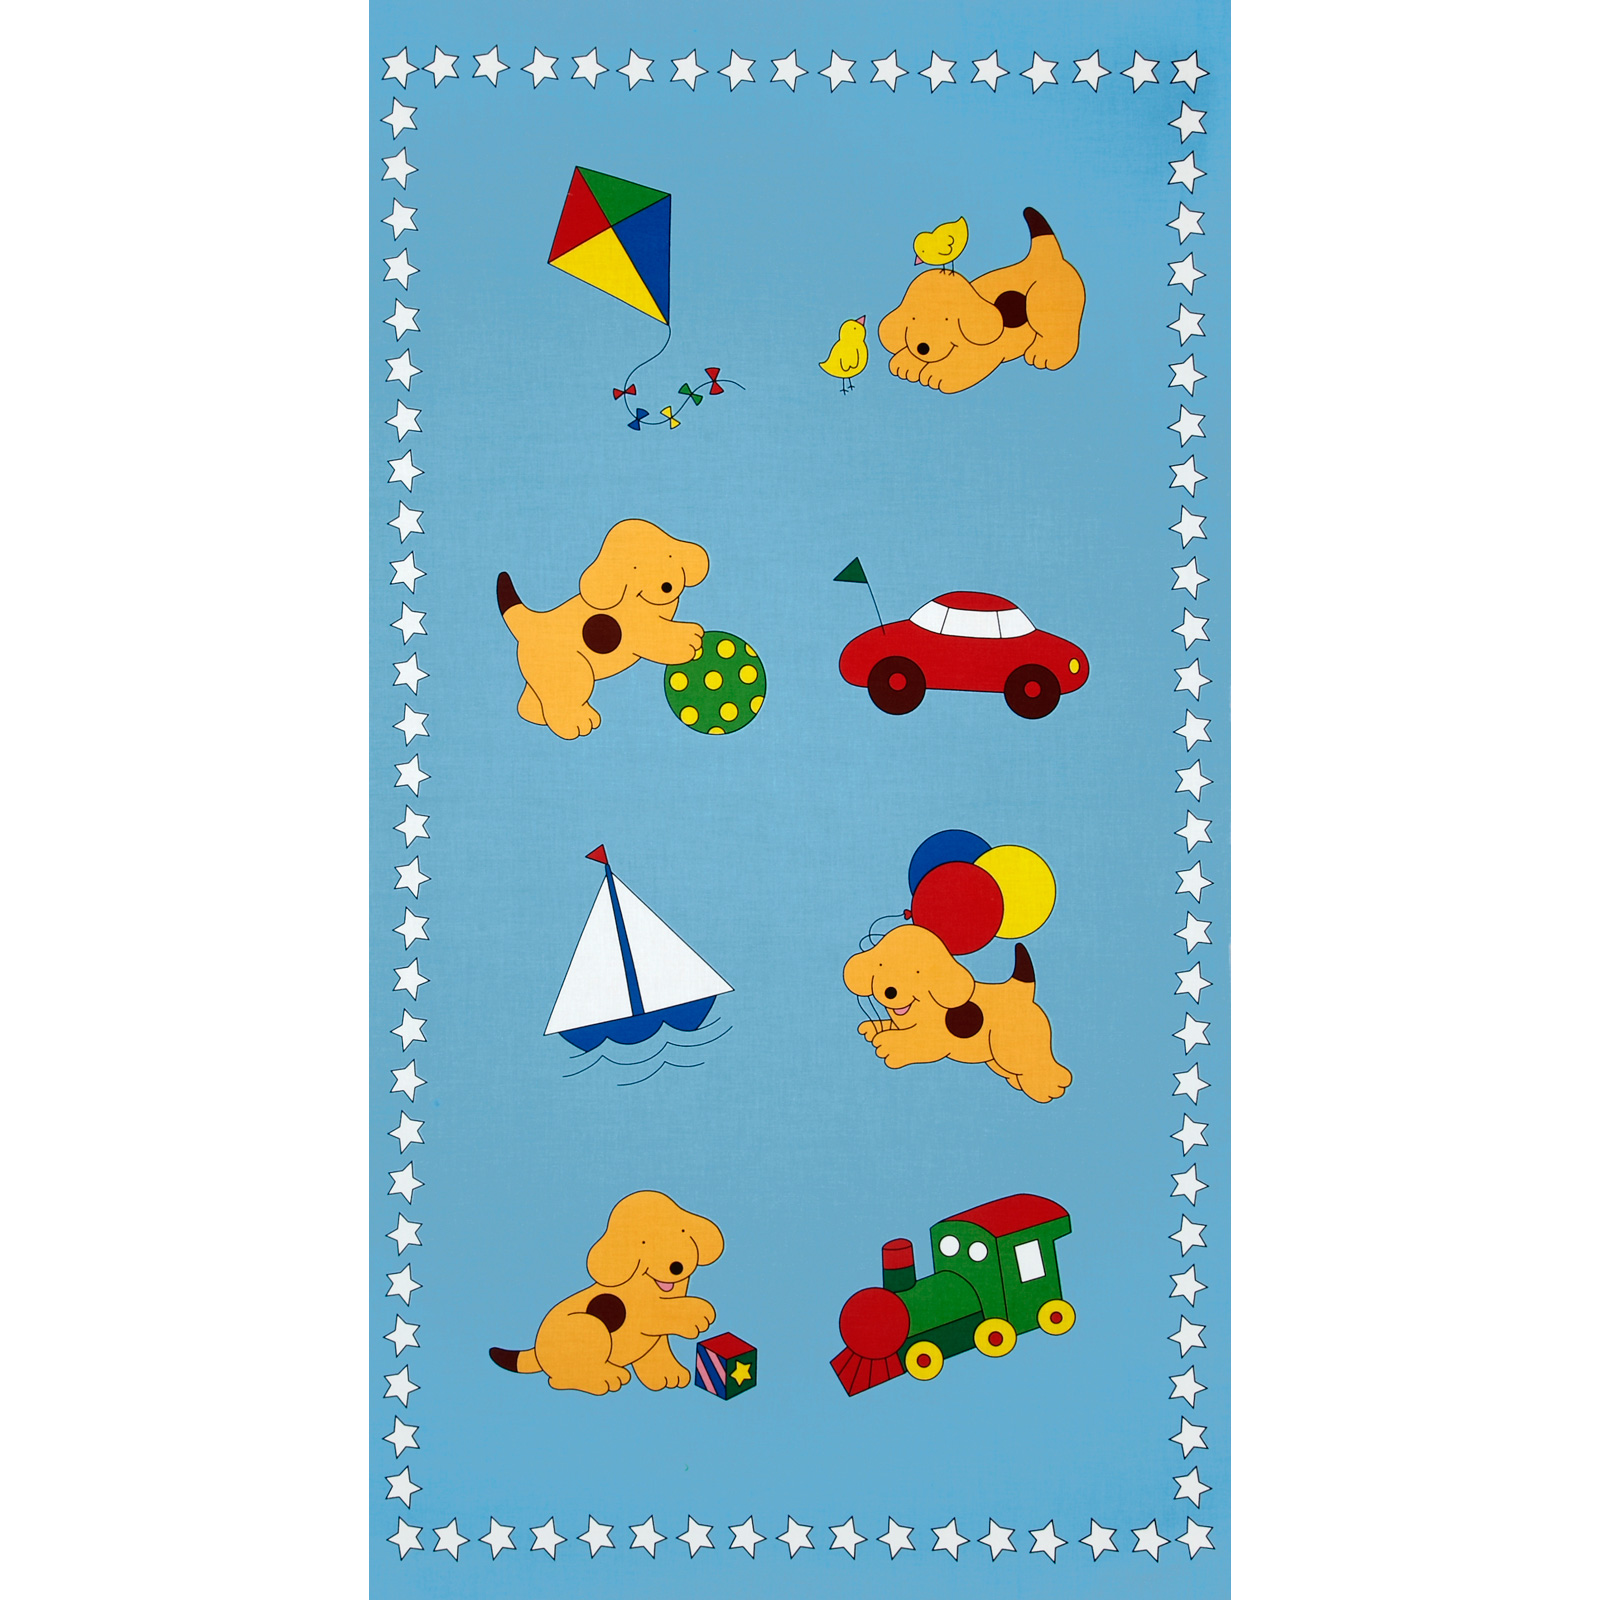 Goodnight Spot Panel Play Blue Fabric